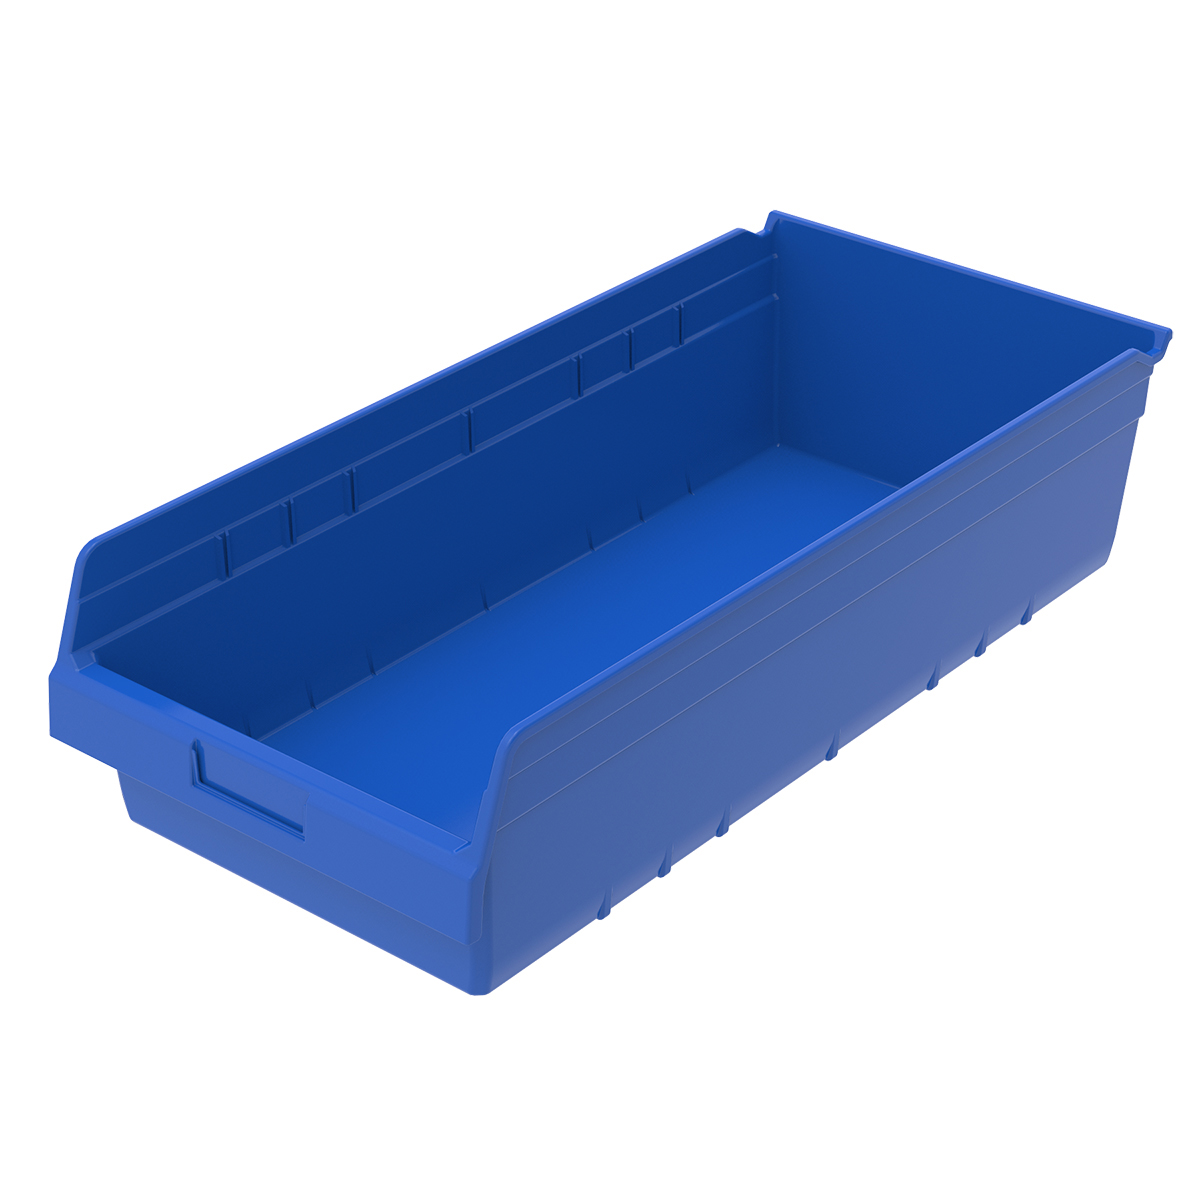 ShelfMax Shelf Bin 23-5/8